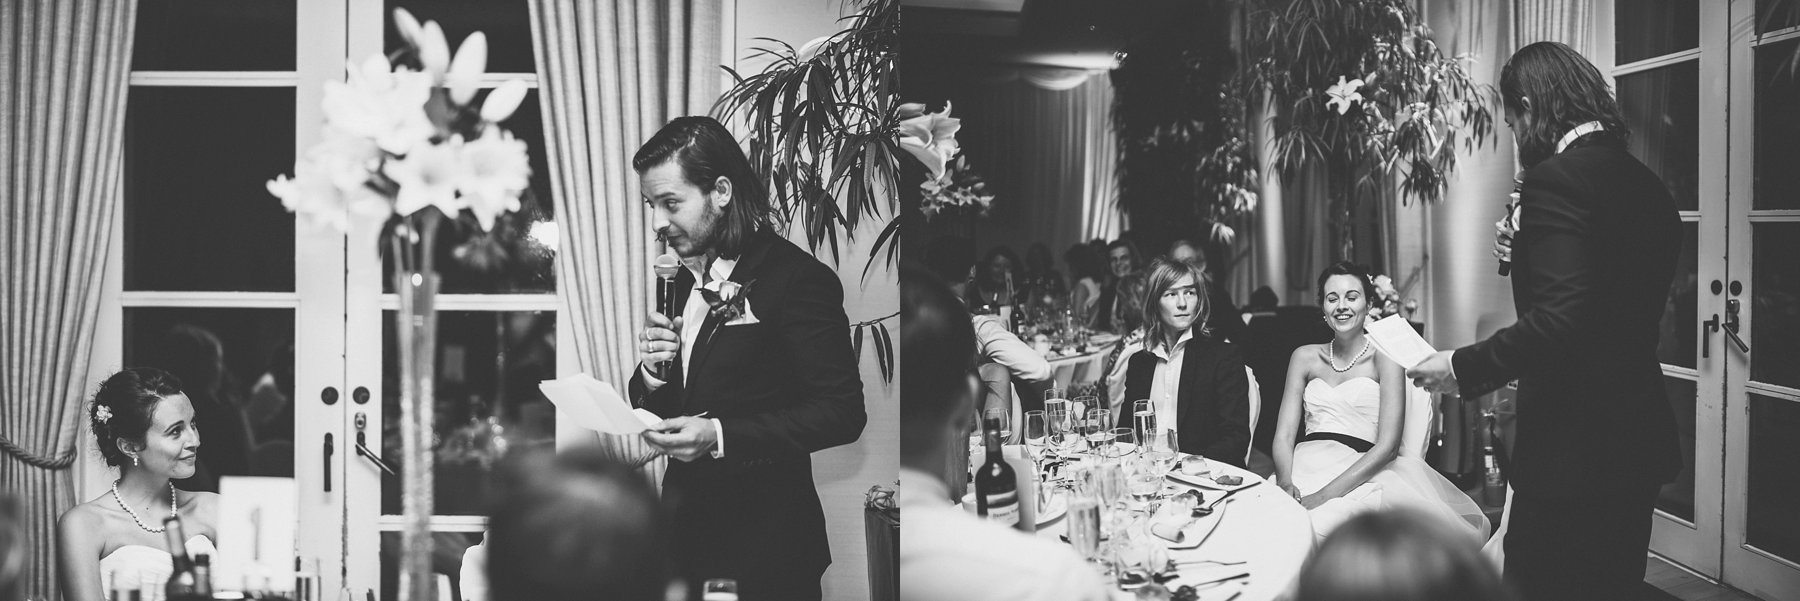 Groom's speech at the Hurlingham Club in Chelsea